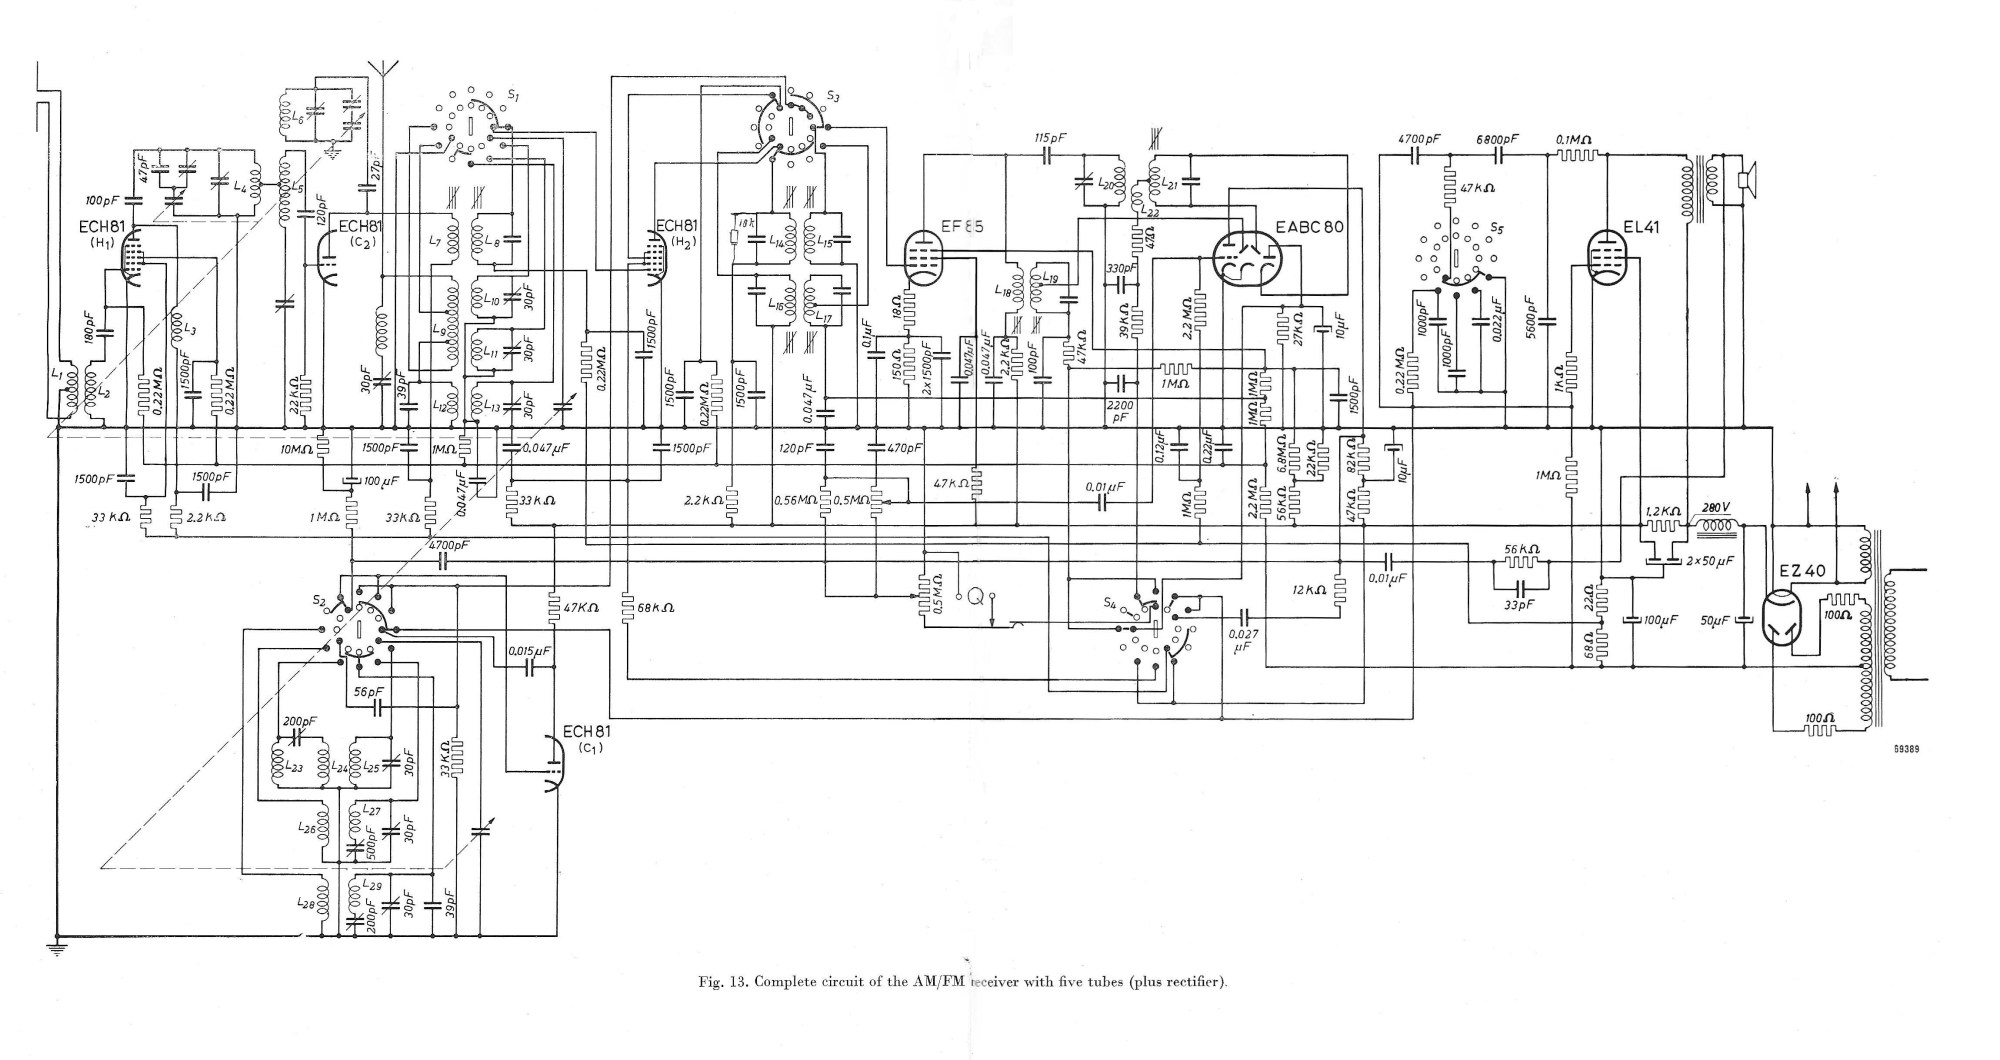 hight resolution of  philps reference design of an am fm receiver from eab 1951 no longer using the eq80 but the eabc80 valve this was the ultimate 5 valve plus an ez40